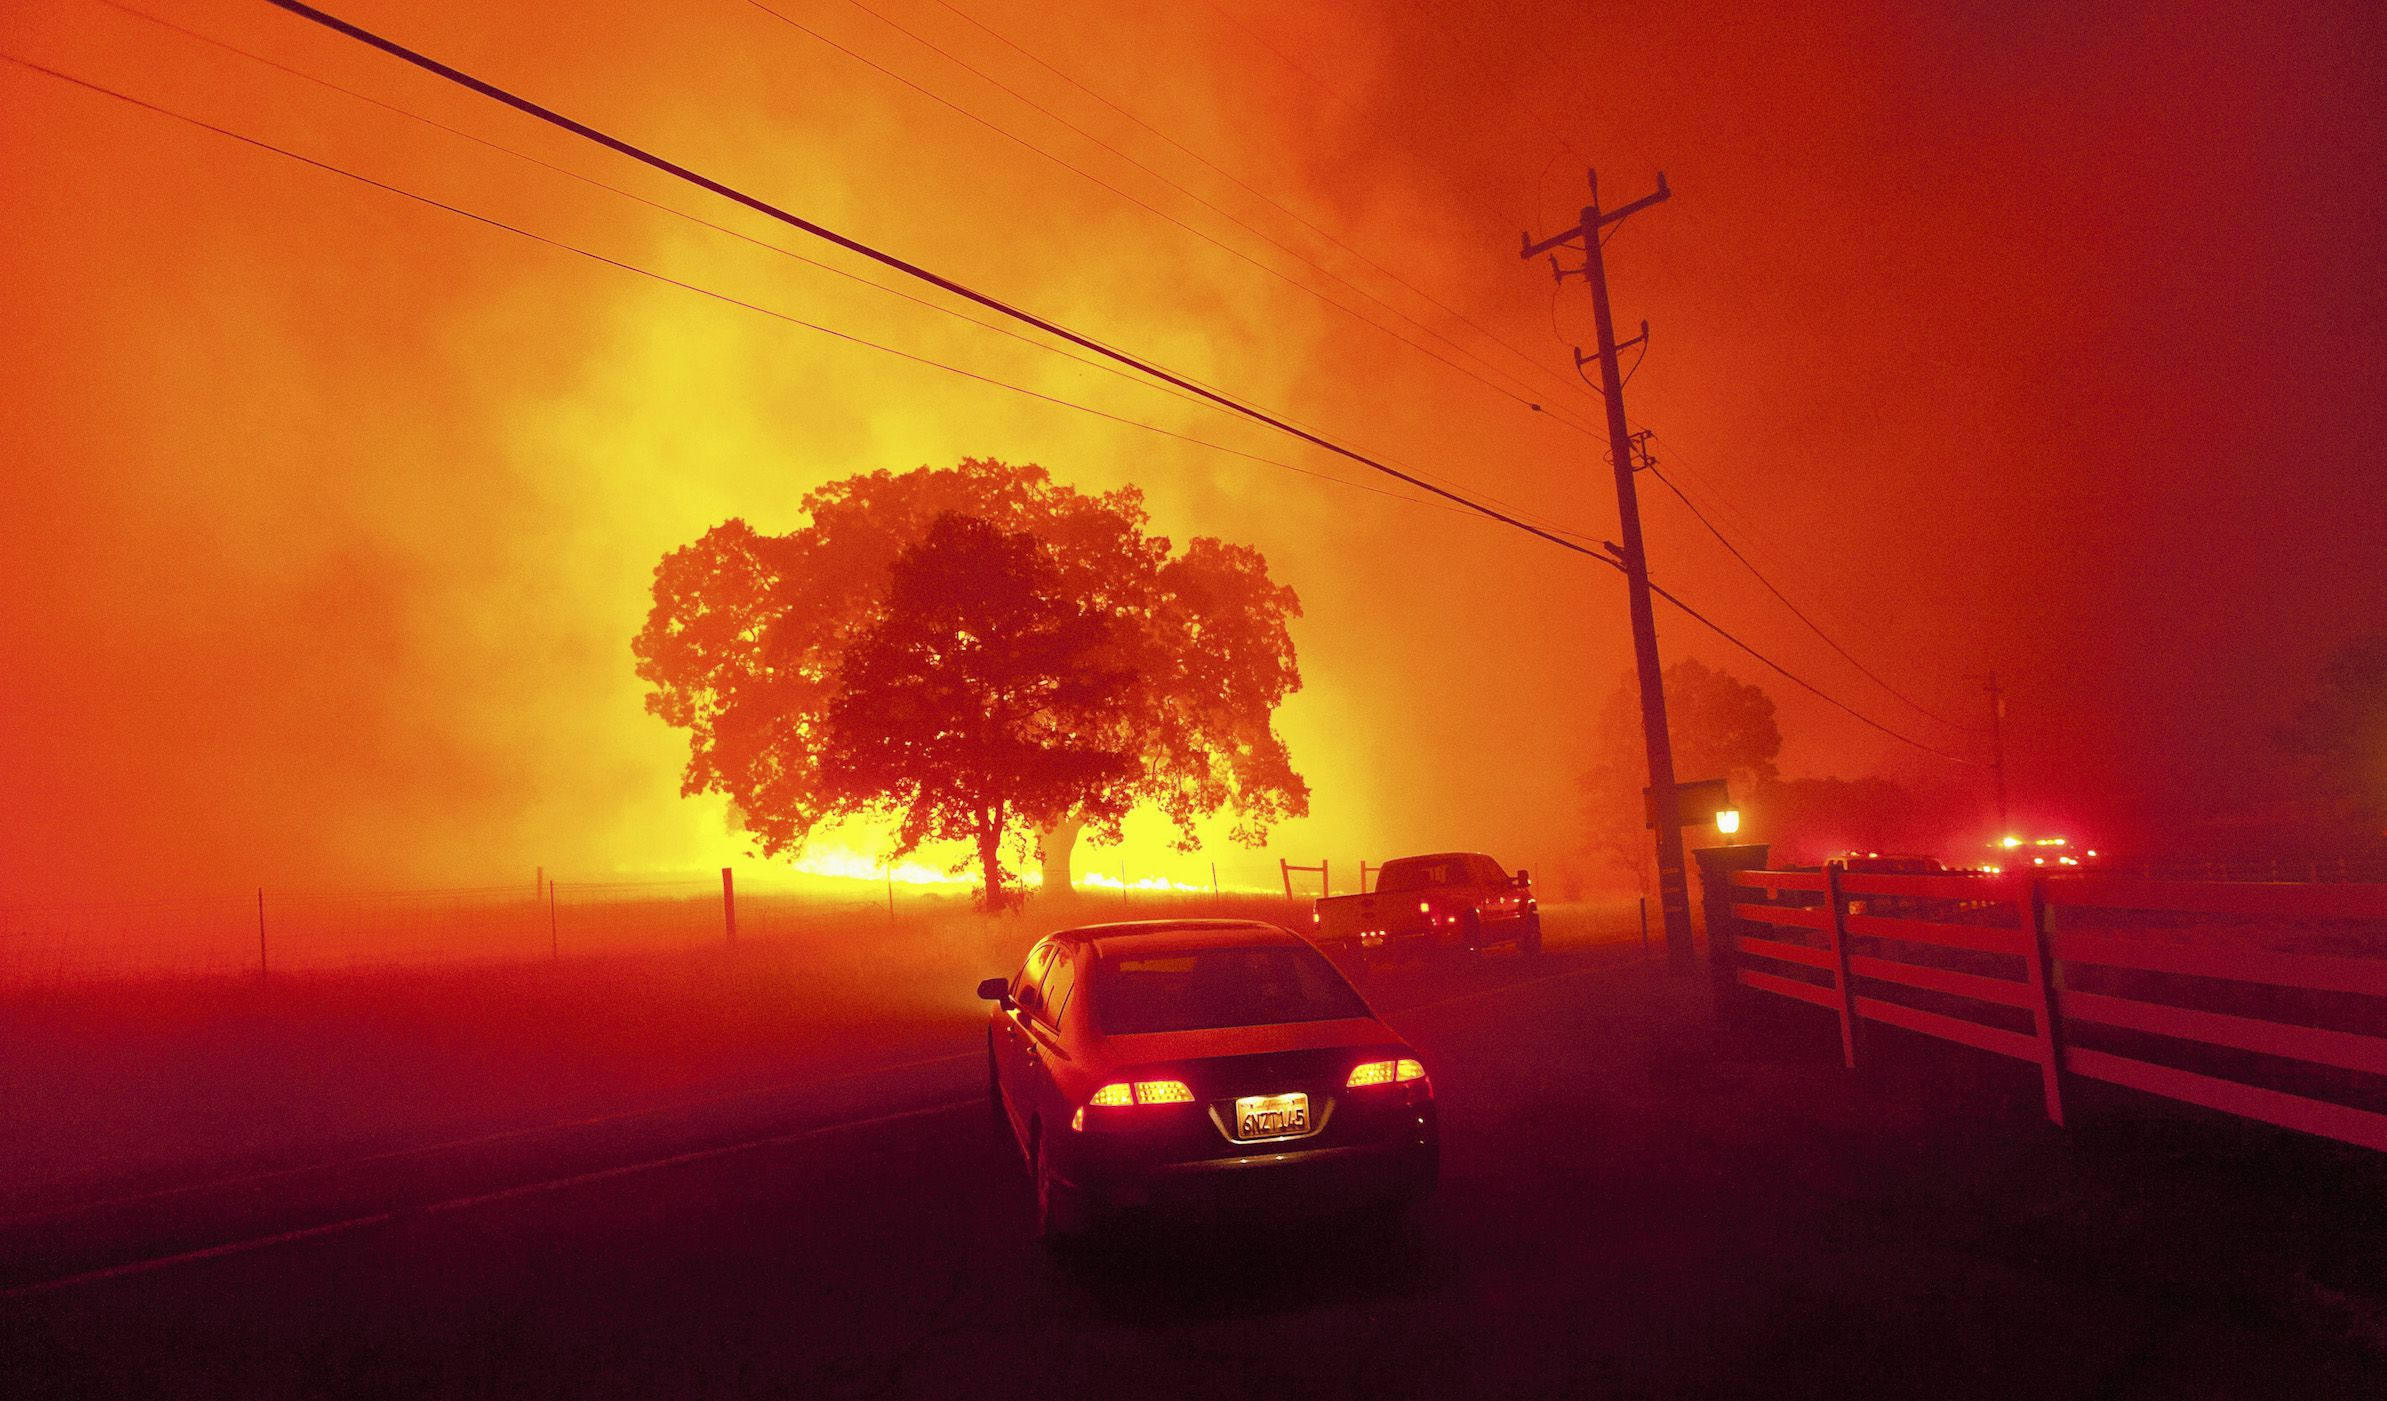 Residents flee as winds whip flames from the Morgan fire along Morgan Territory Road near Clayton, California in unincorporated Contra Costa County September 9, 2013. The blaze, burning in dense, dry scrub, grass and timber in and around Mount Diablo State Park, had scorched some 3,700 acres (1,500 hectares) by Monday afternoon, forcing the evacuation of about 100 homes at the edge of the town of Clayton. REUTERS/Noah Berger (UNITED STATES - Tags: DISASTER ENVIRONMENT SOCIETY TPX IMAGES OF THE DAY) - RTX13F8W